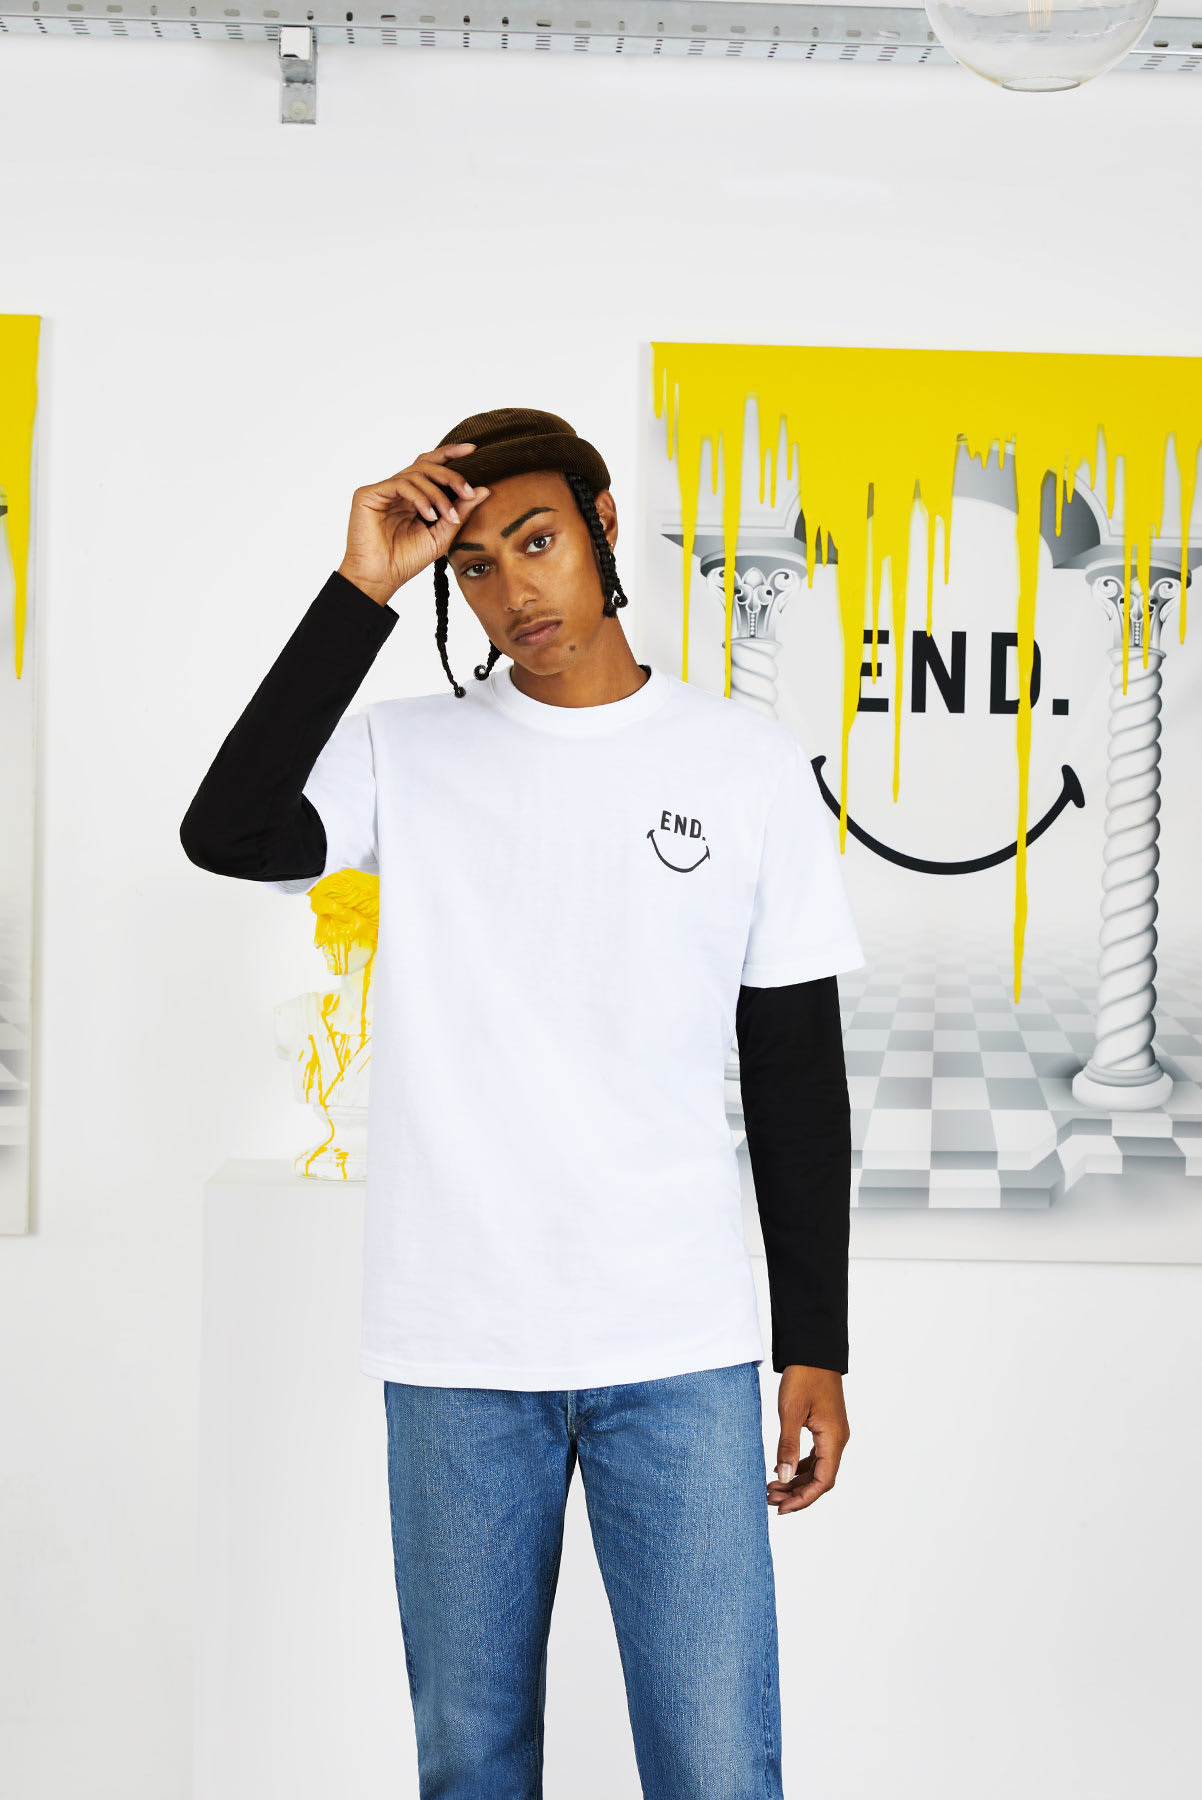 END. x Chinatown Market collaboration temple tee